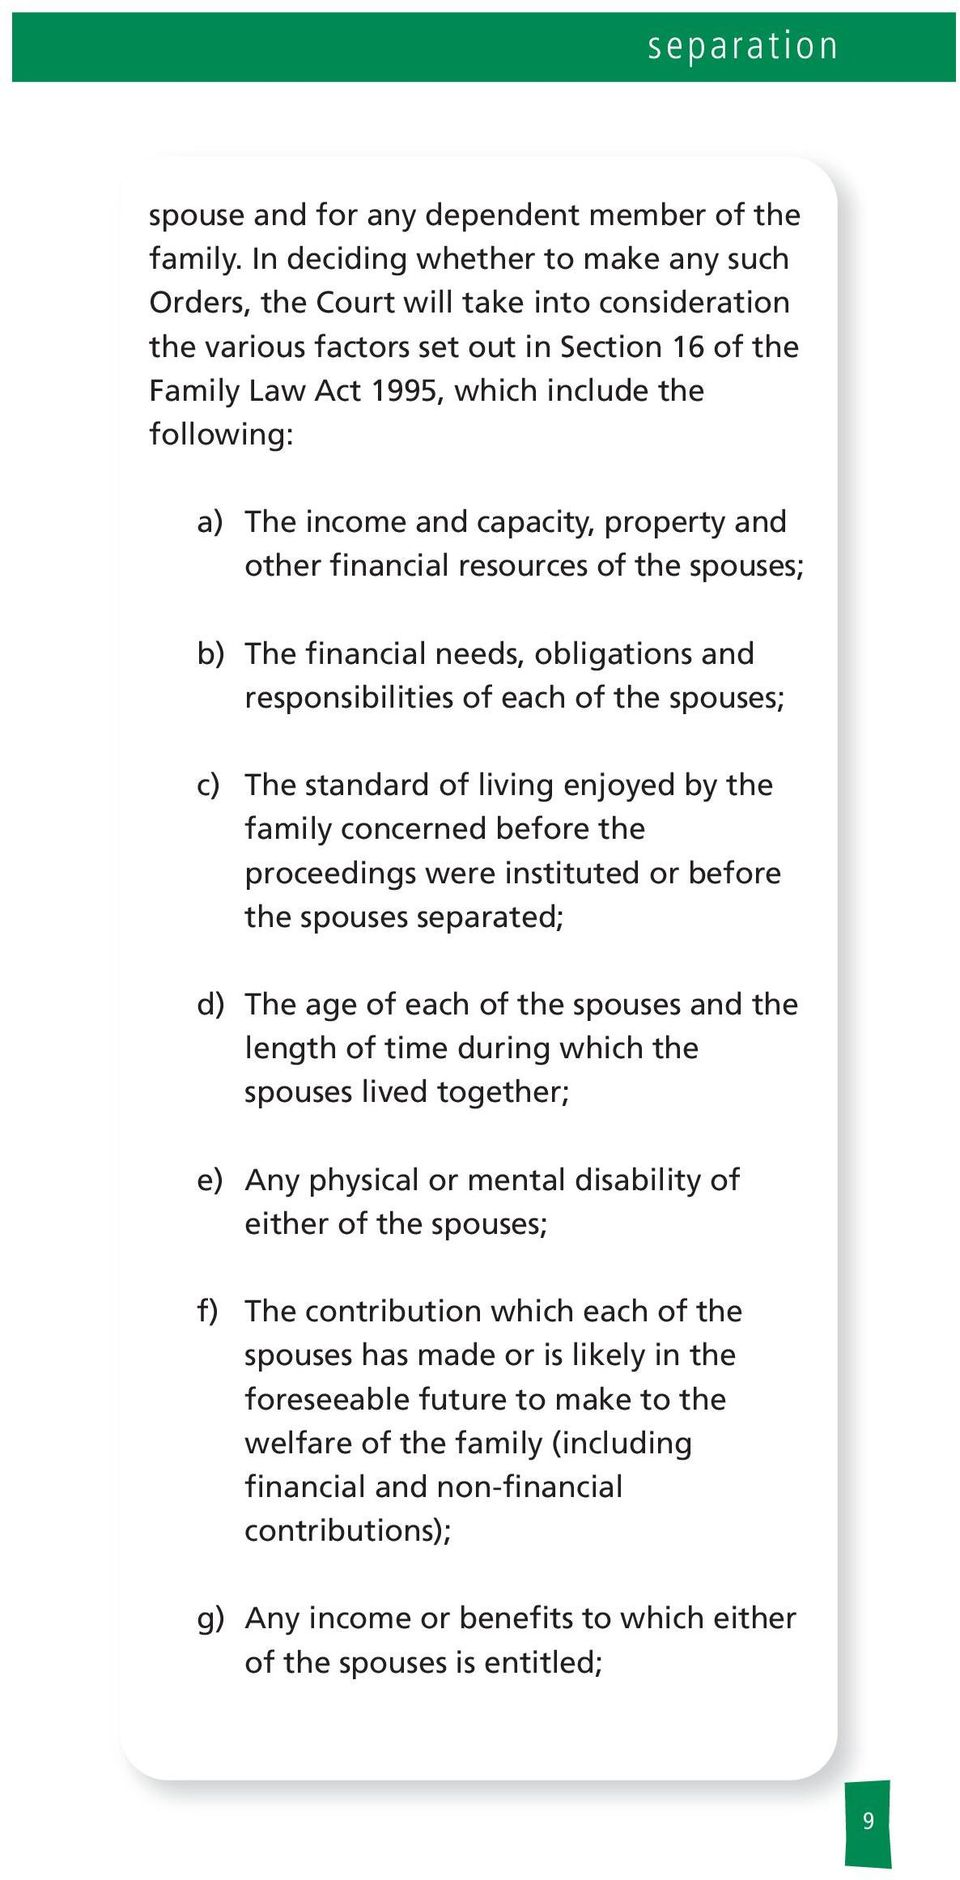 capacity, property and other financia resources of the spouses; b) The financia needs, obigations and responsibiities of each of the spouses; c) The standard of iving enjoyed by the famiy concerned